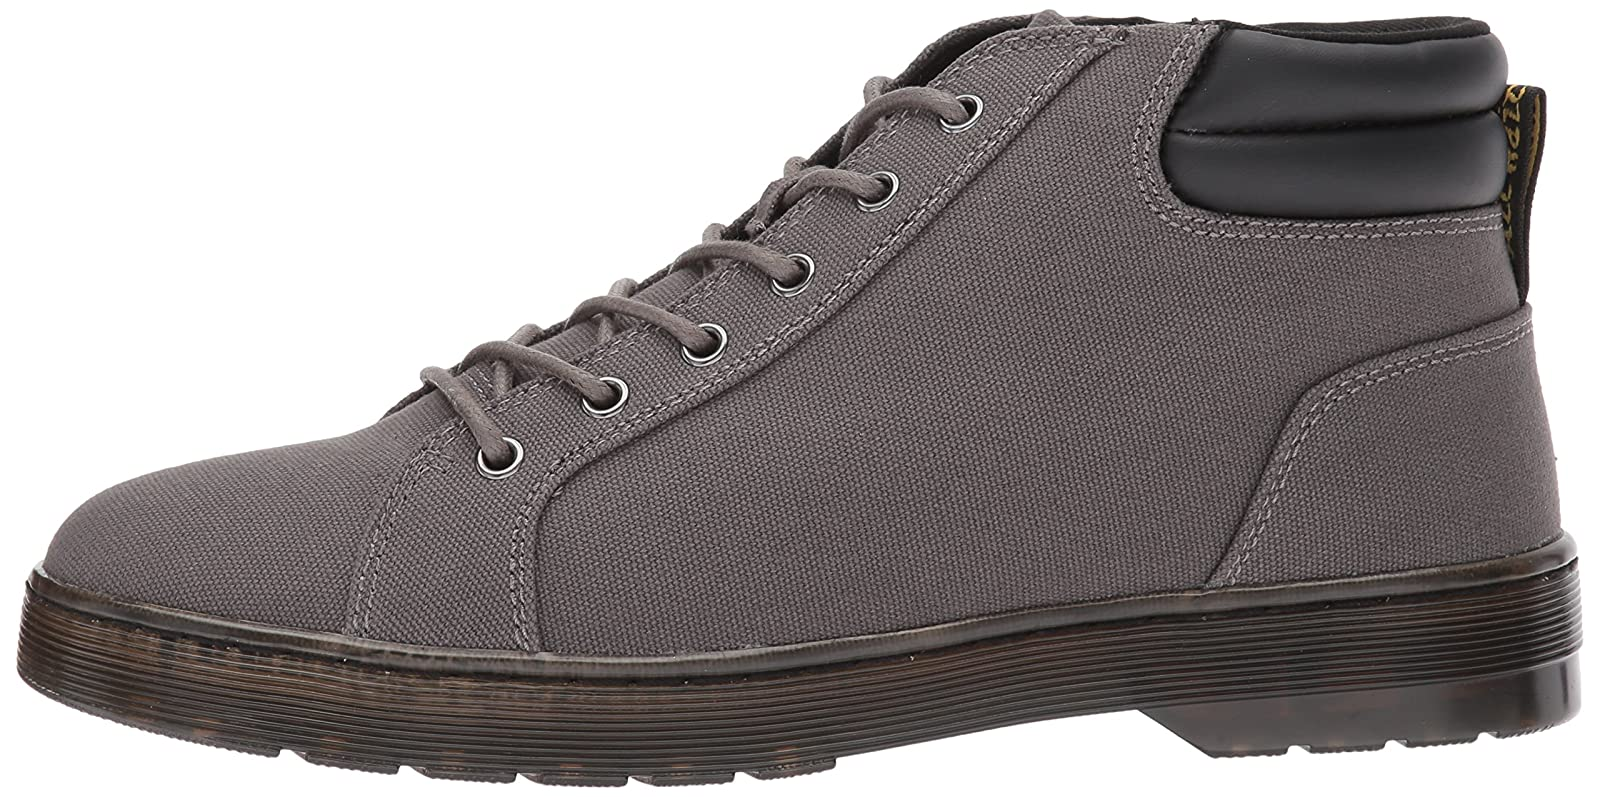 Dr. Martens Men's Plaza Gunmetal Fashion Boot R22864029 - 5